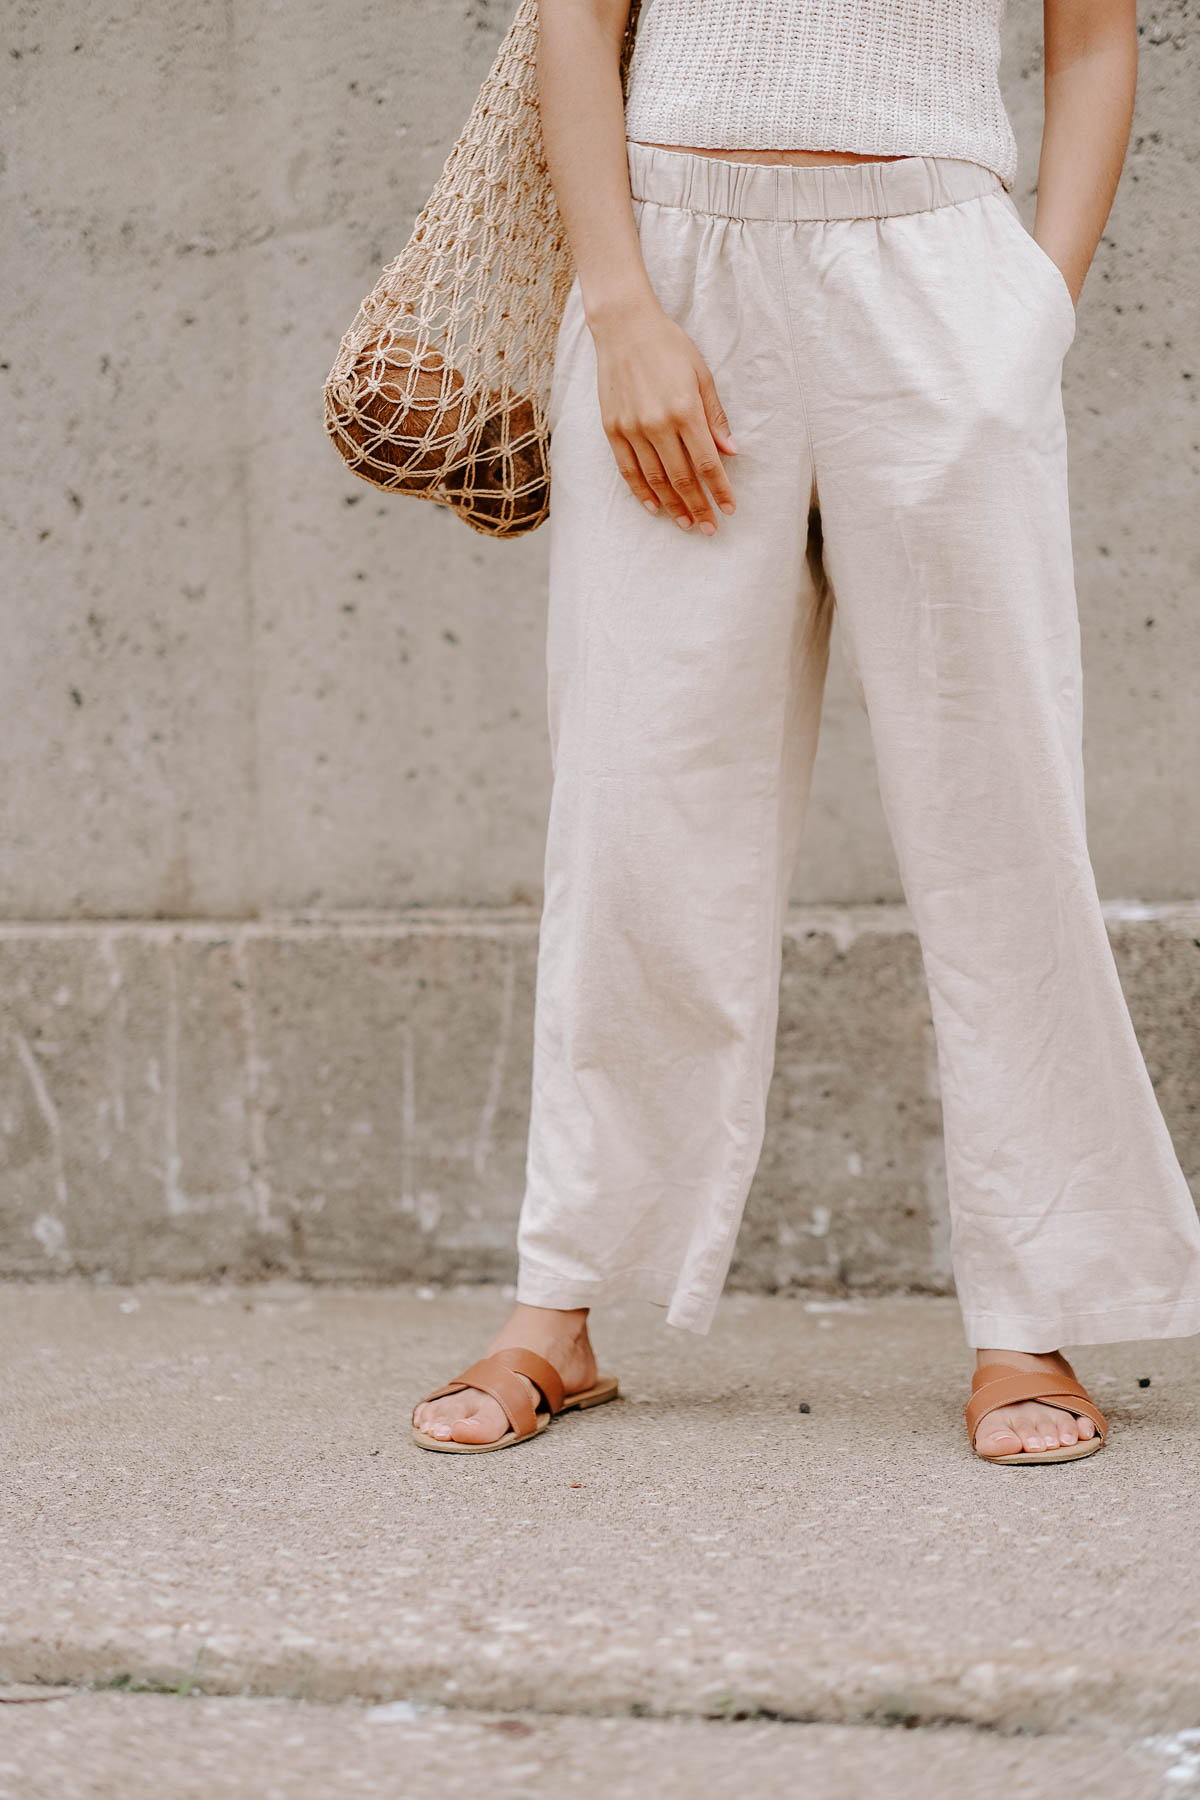 classic style in hot climates